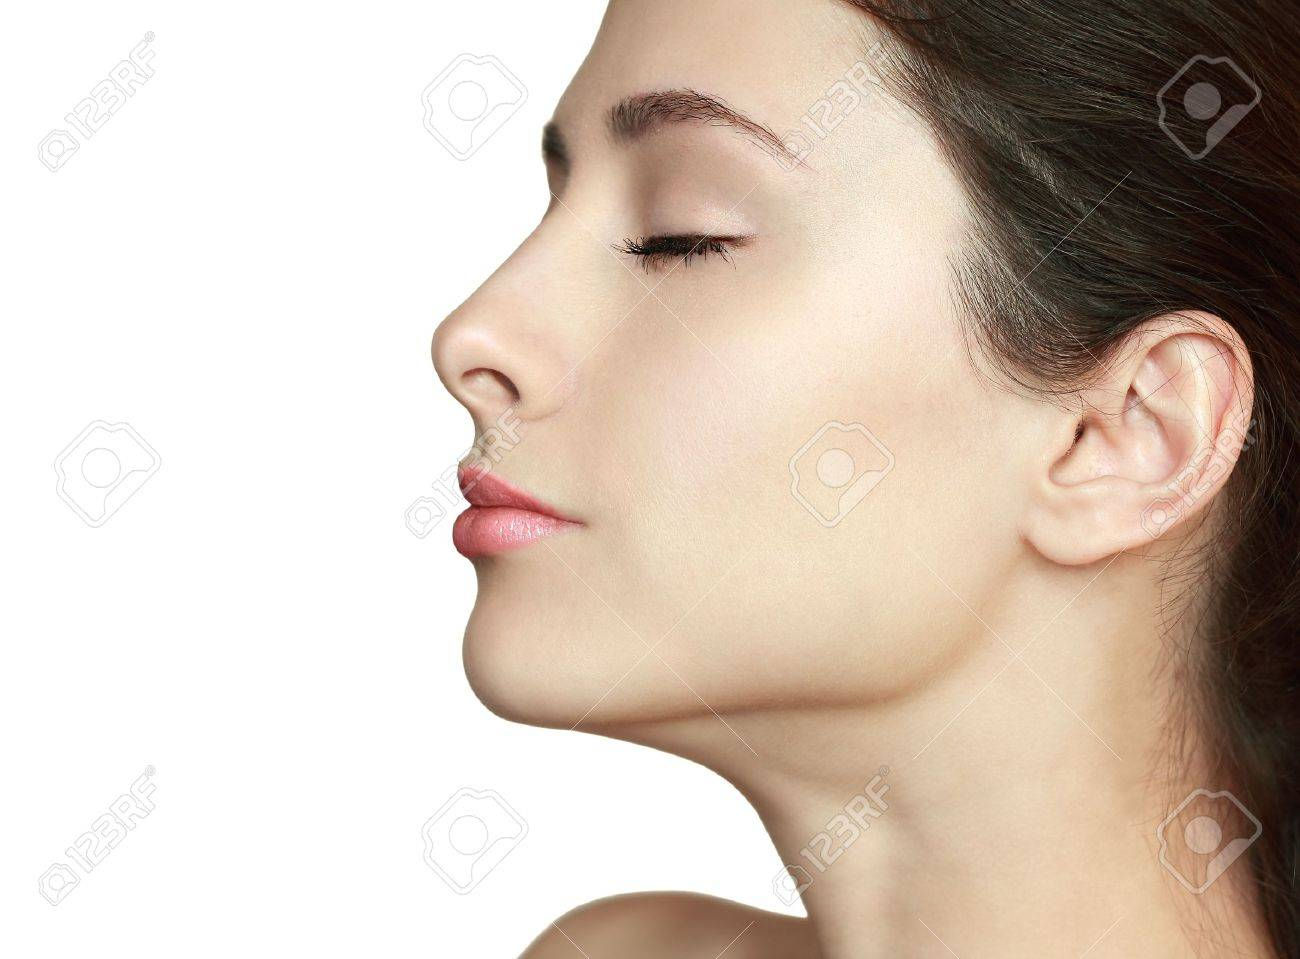 Beautiful woman profile with closed eyes isolated  Clean health skin face Stock Photo - 17646438